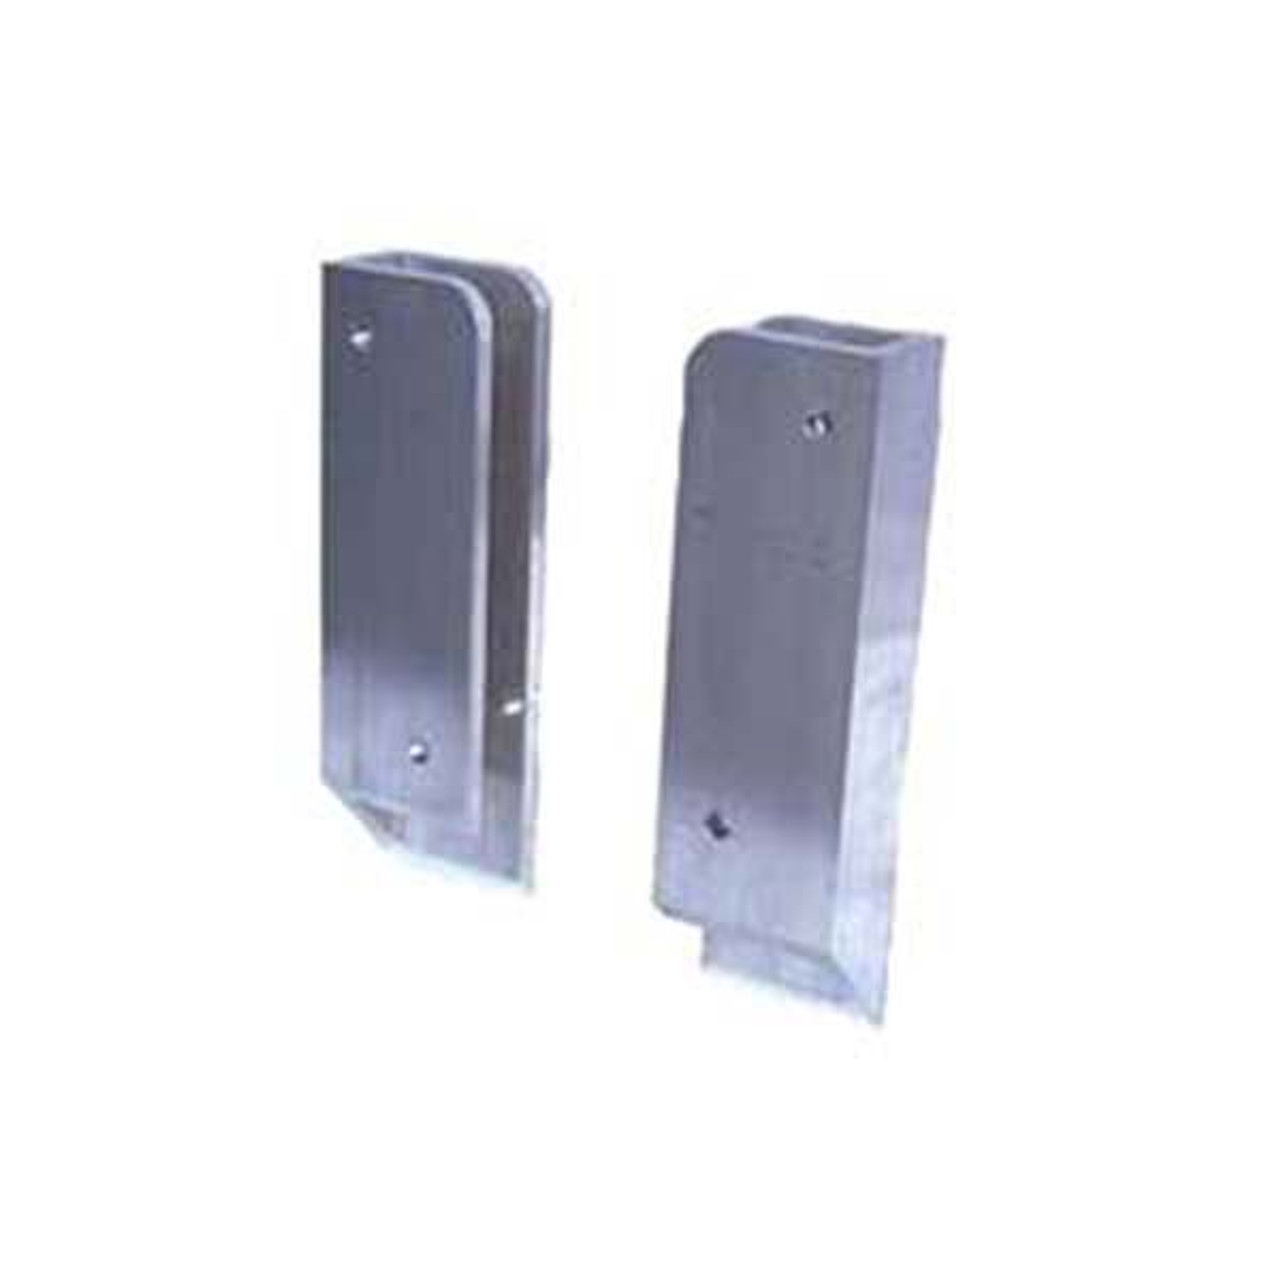 CMC Static Jack Plate 5 inch vertical extension